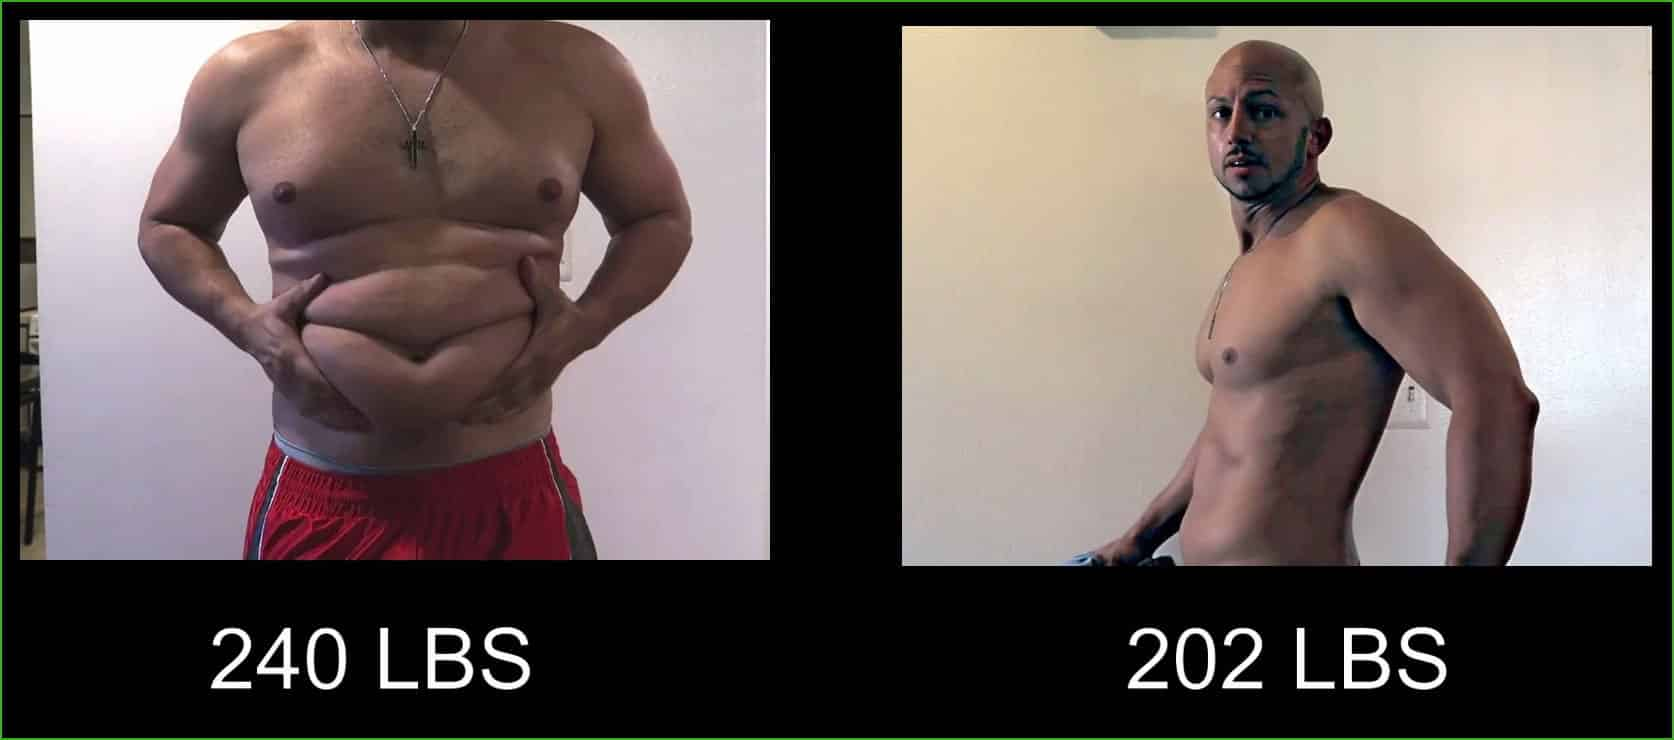 Enzo body transformation before and after